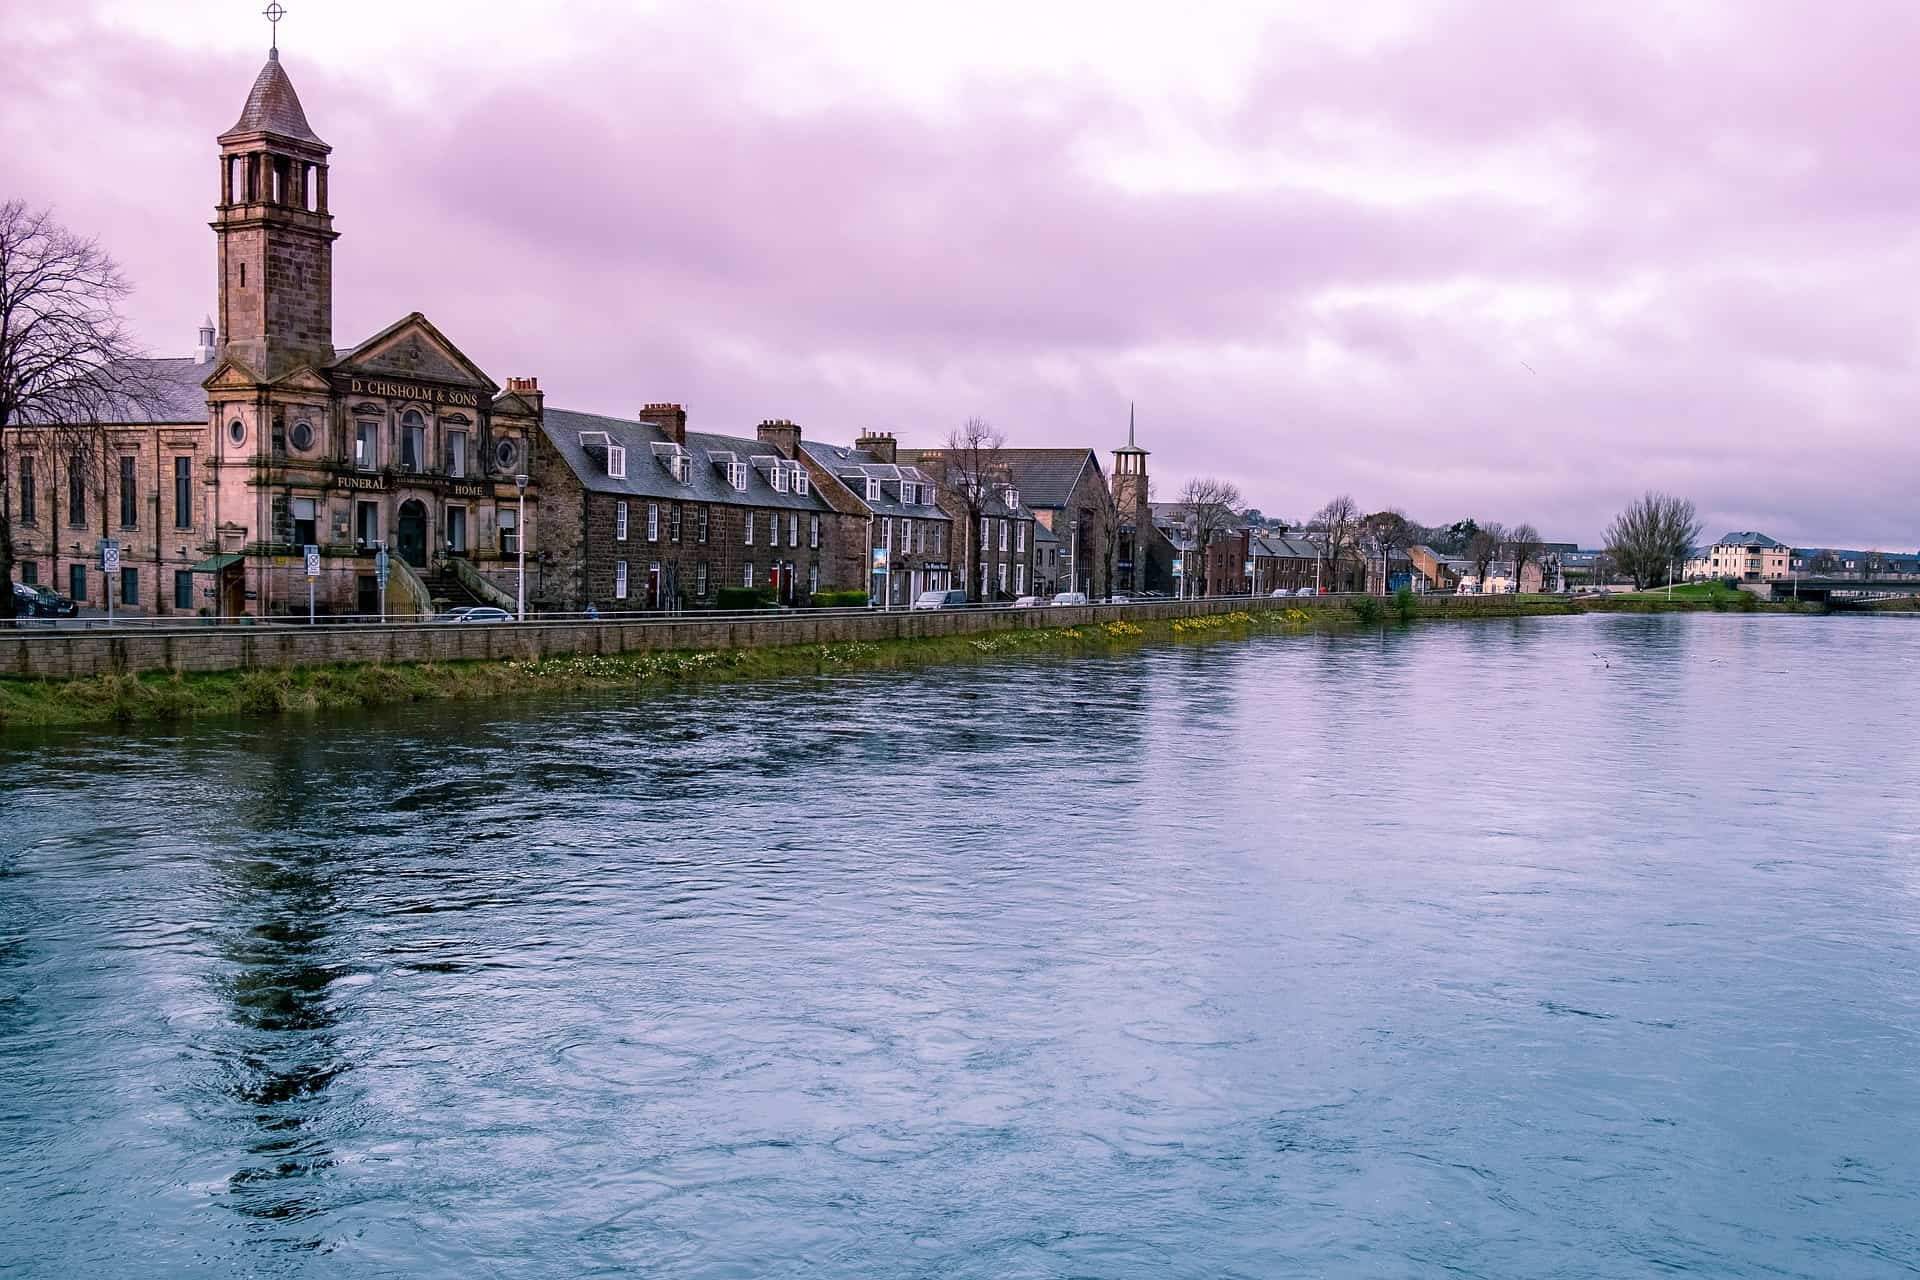 Scotland - Inverness - Landscape by water